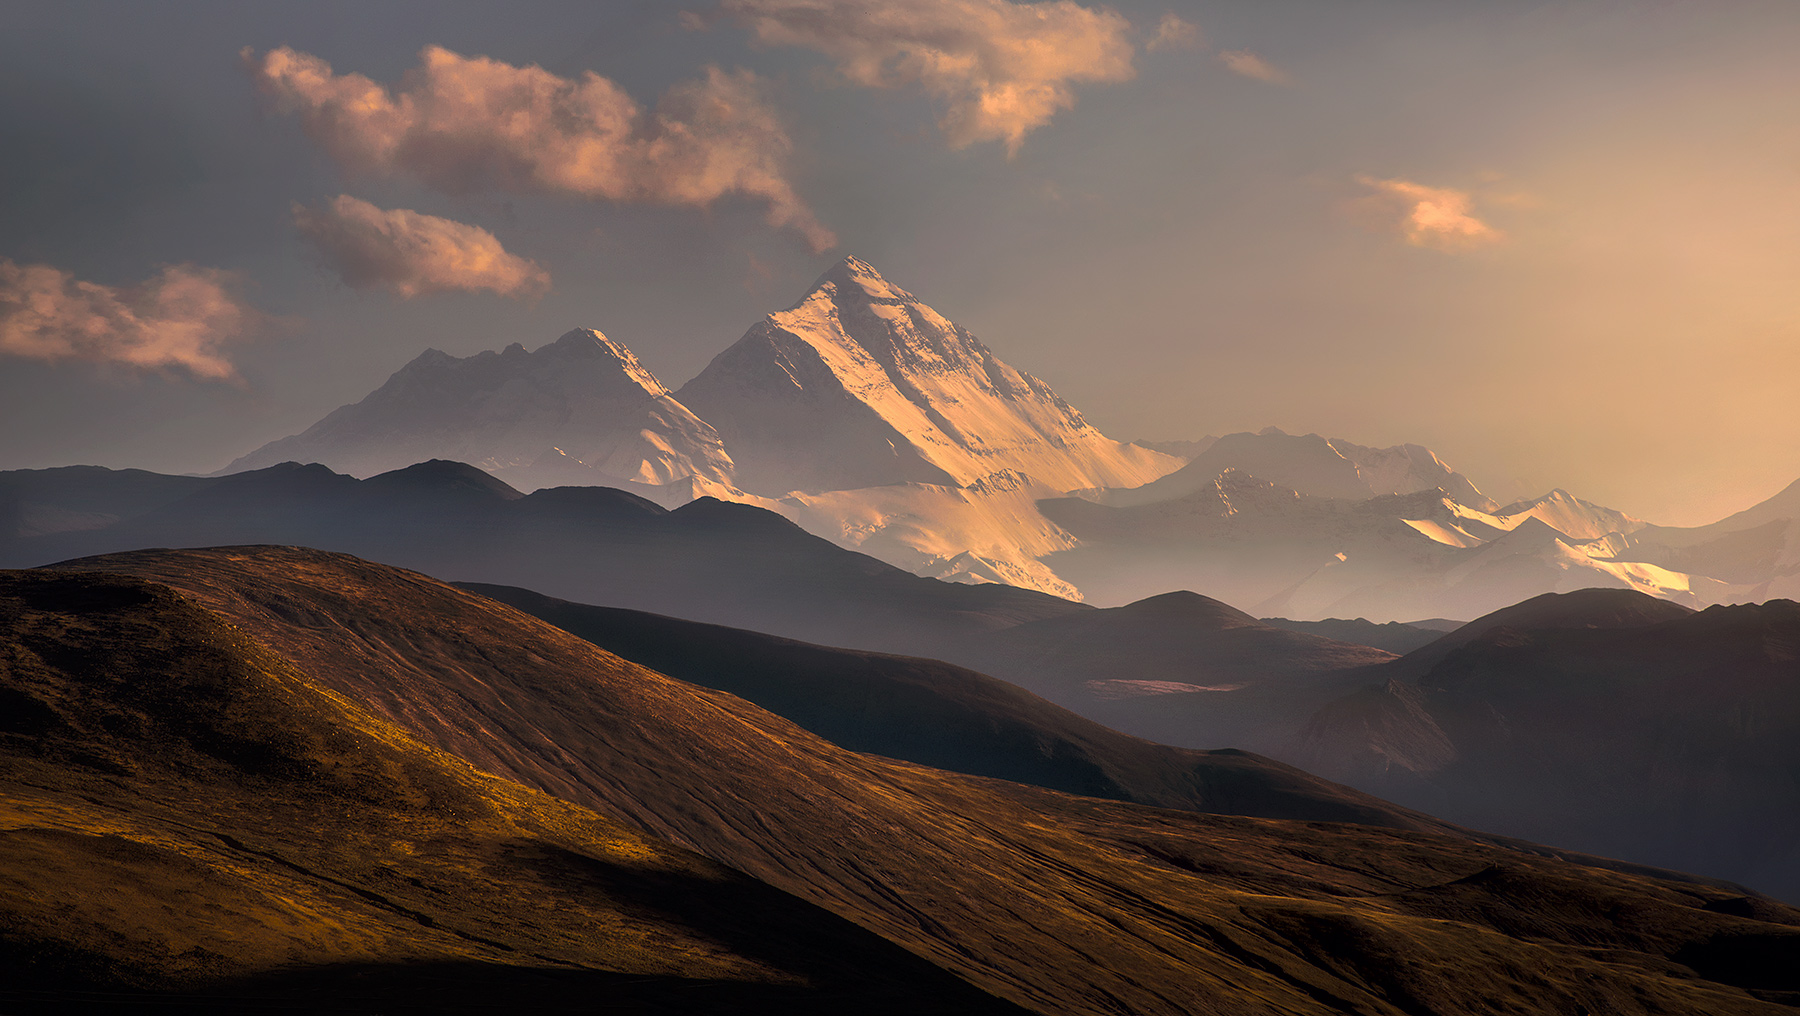 Mount Everest rises above the layers of Tibetan plains.